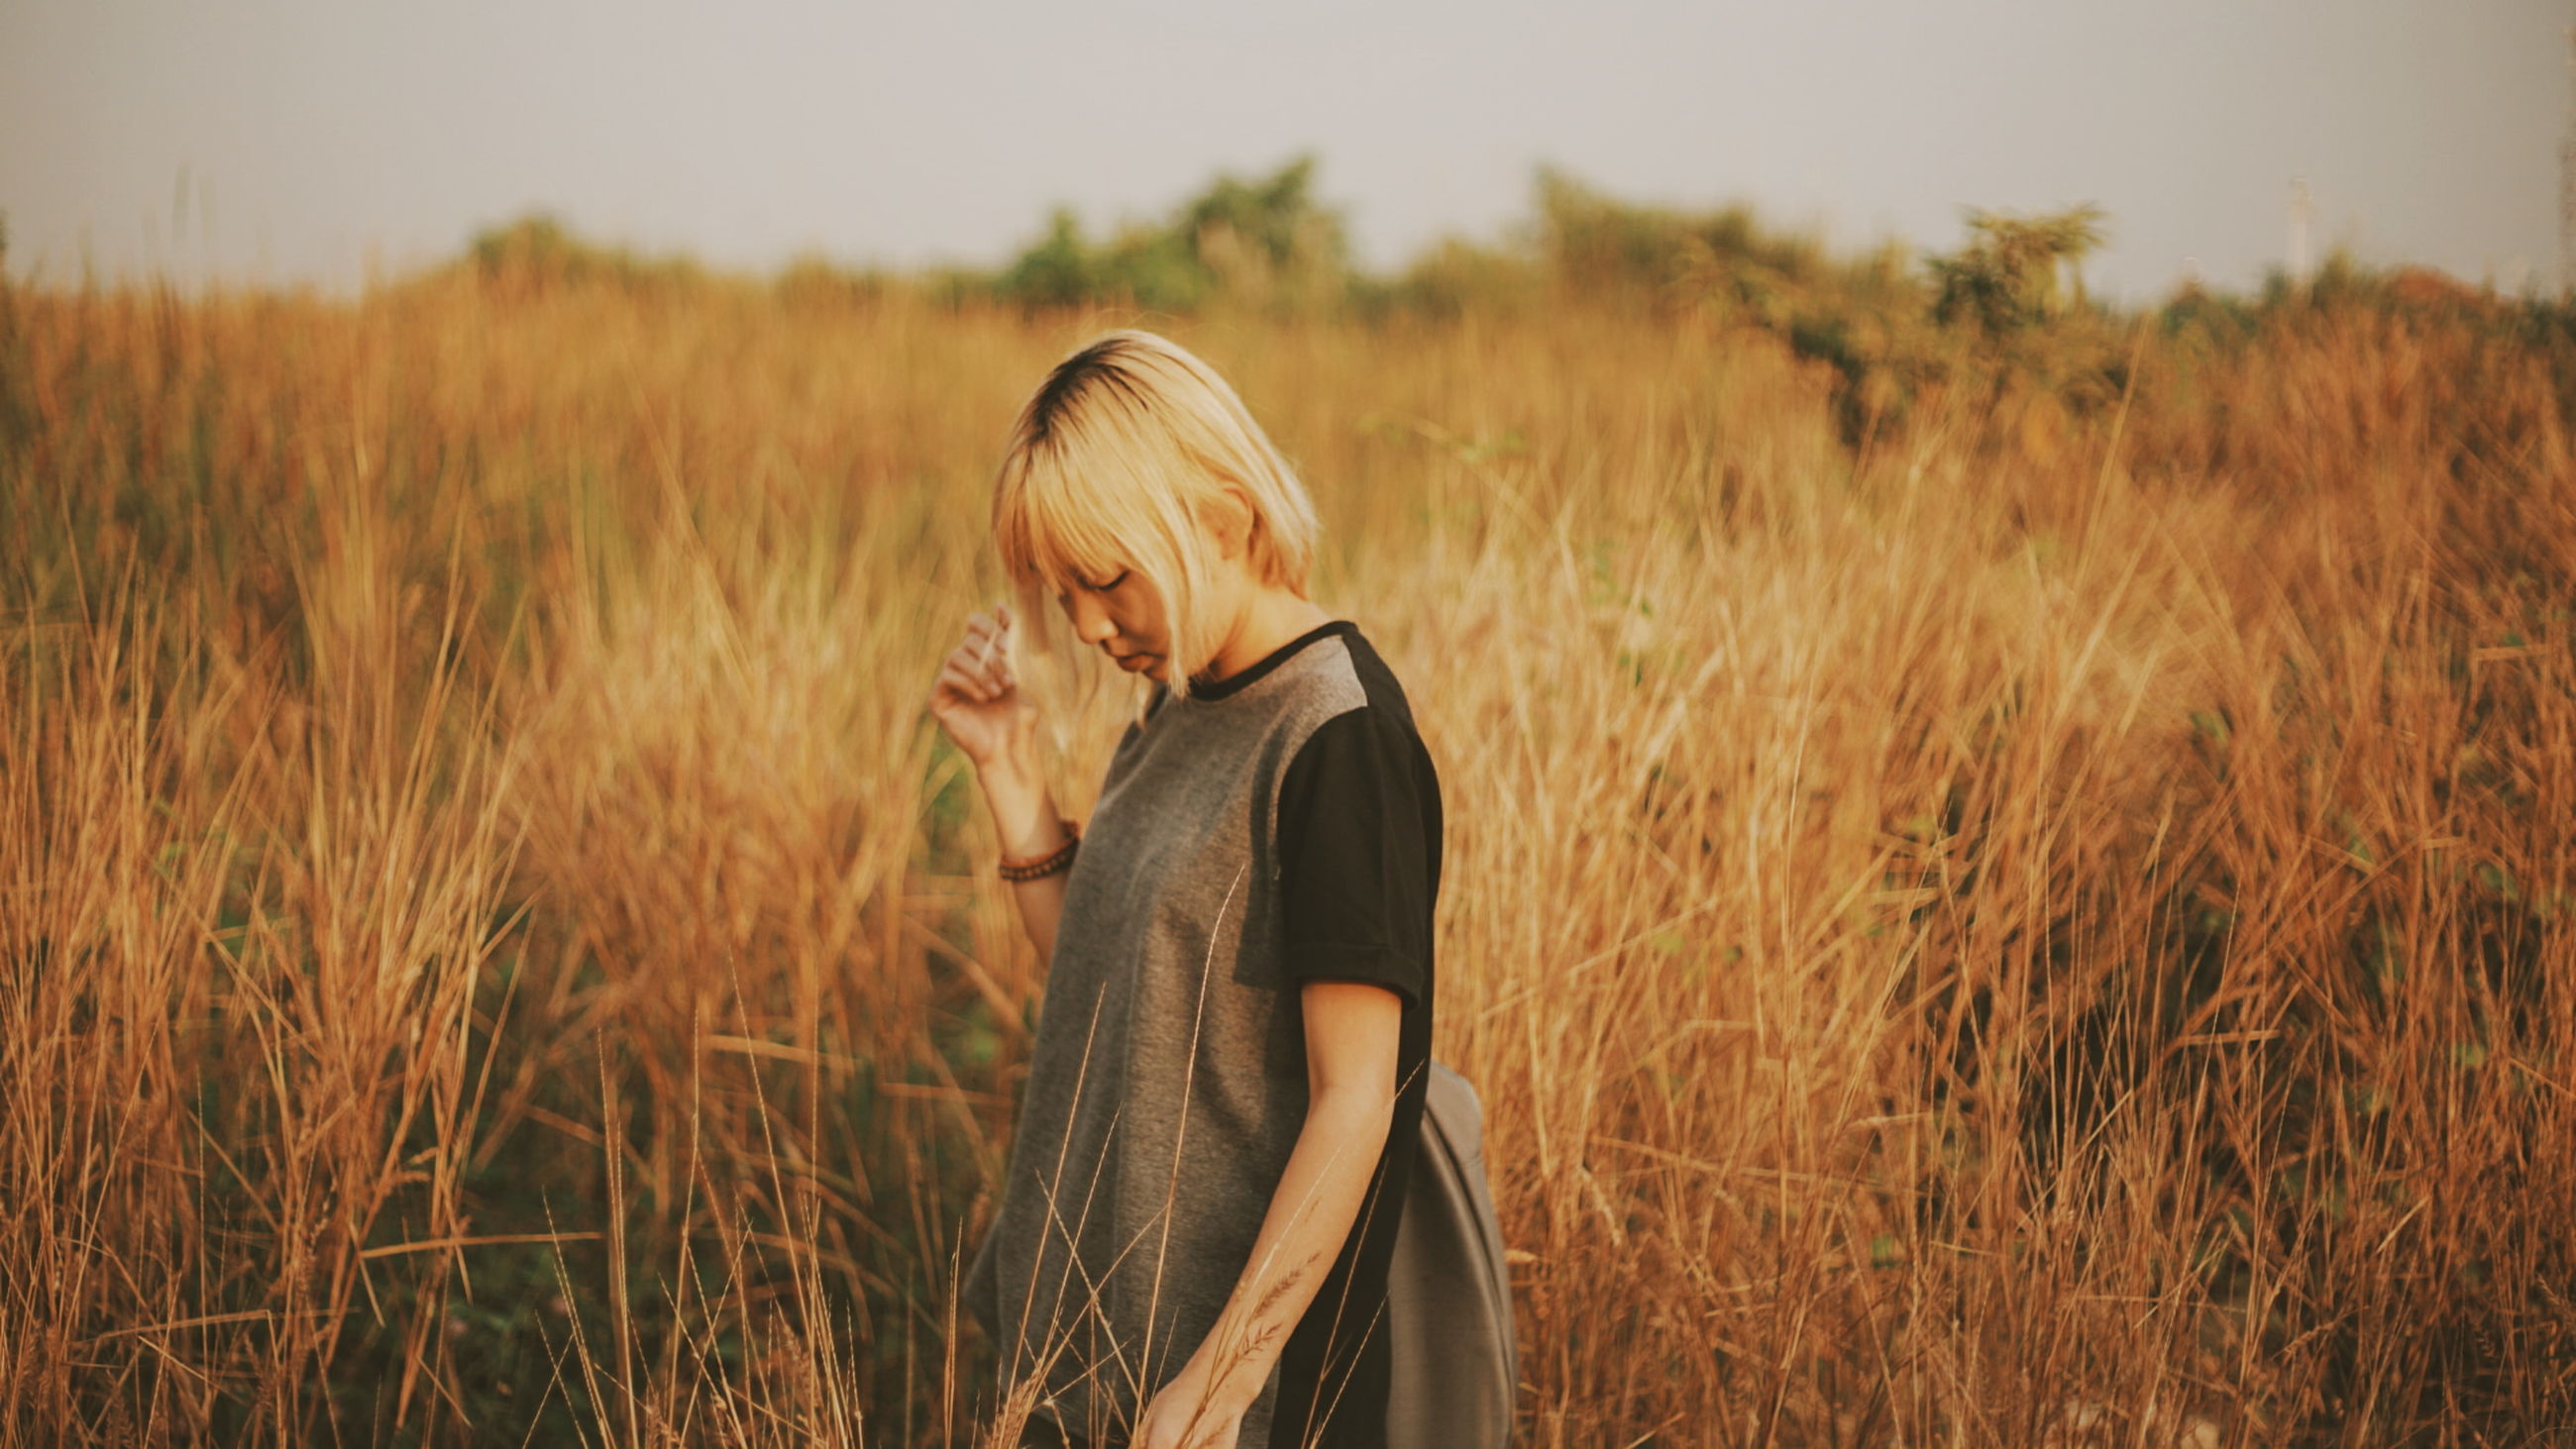 lifestyles, field, grass, leisure activity, young adult, standing, young women, casual clothing, three quarter length, plant, person, nature, tranquility, waist up, landscape, long hair, sky, outdoors